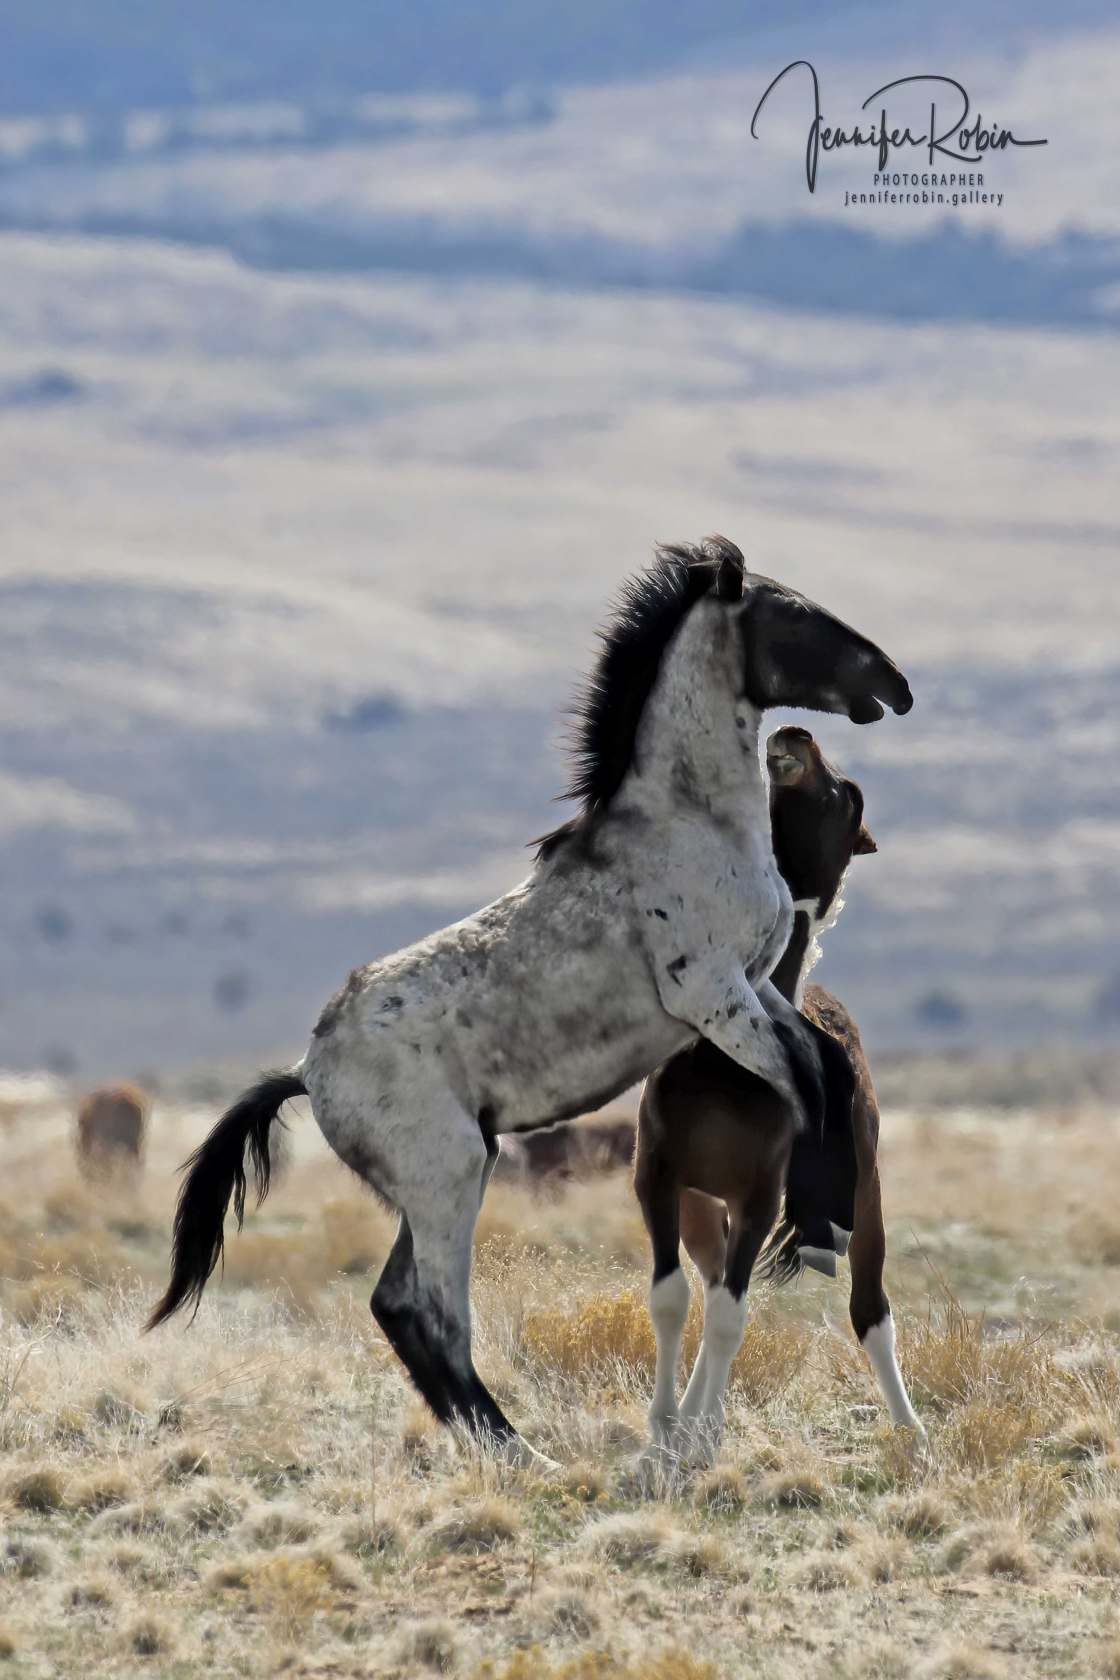 A wild horse from the Onaqui herd stands on its back legs